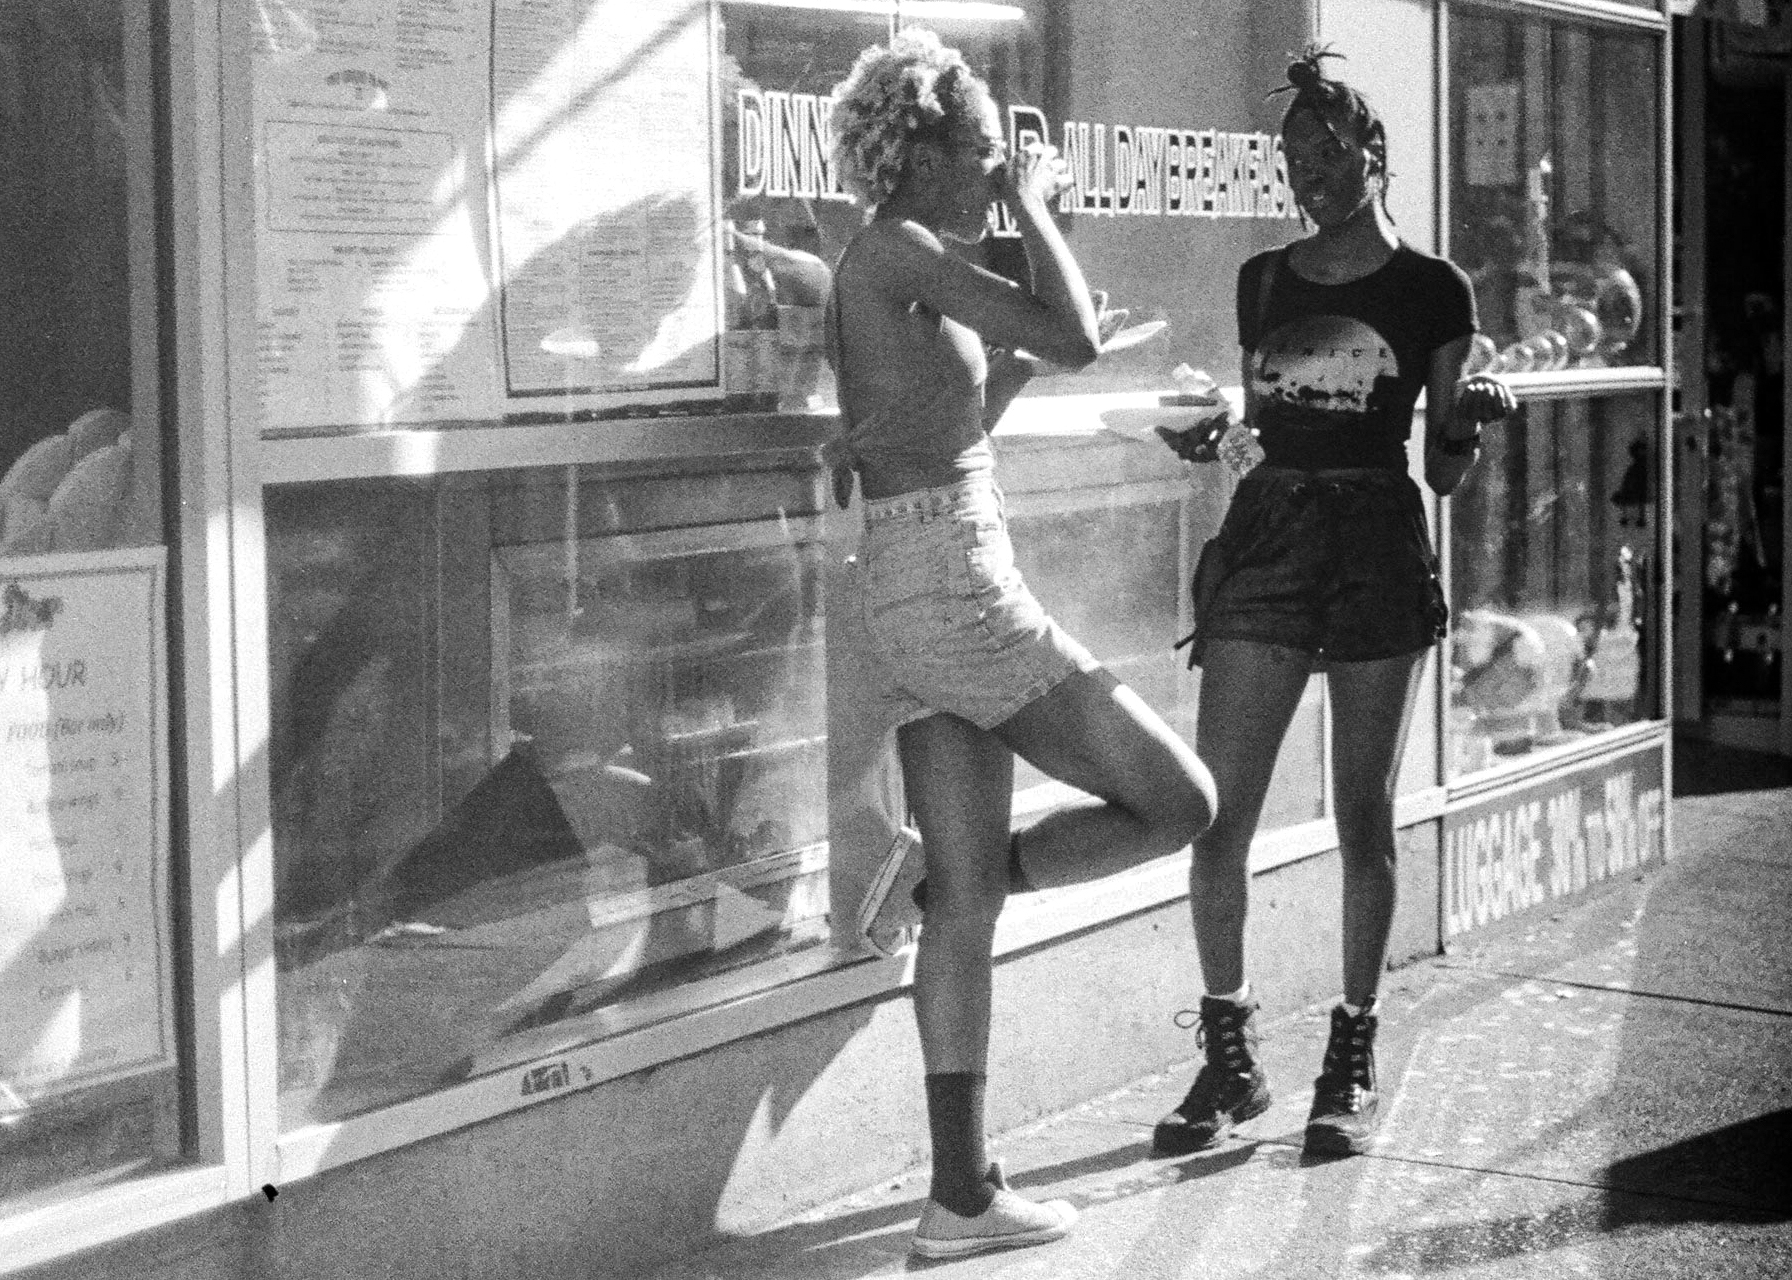 2 Girls near Times Square_Film Photography_NYC_Joe Curry Photography_2018.jpg